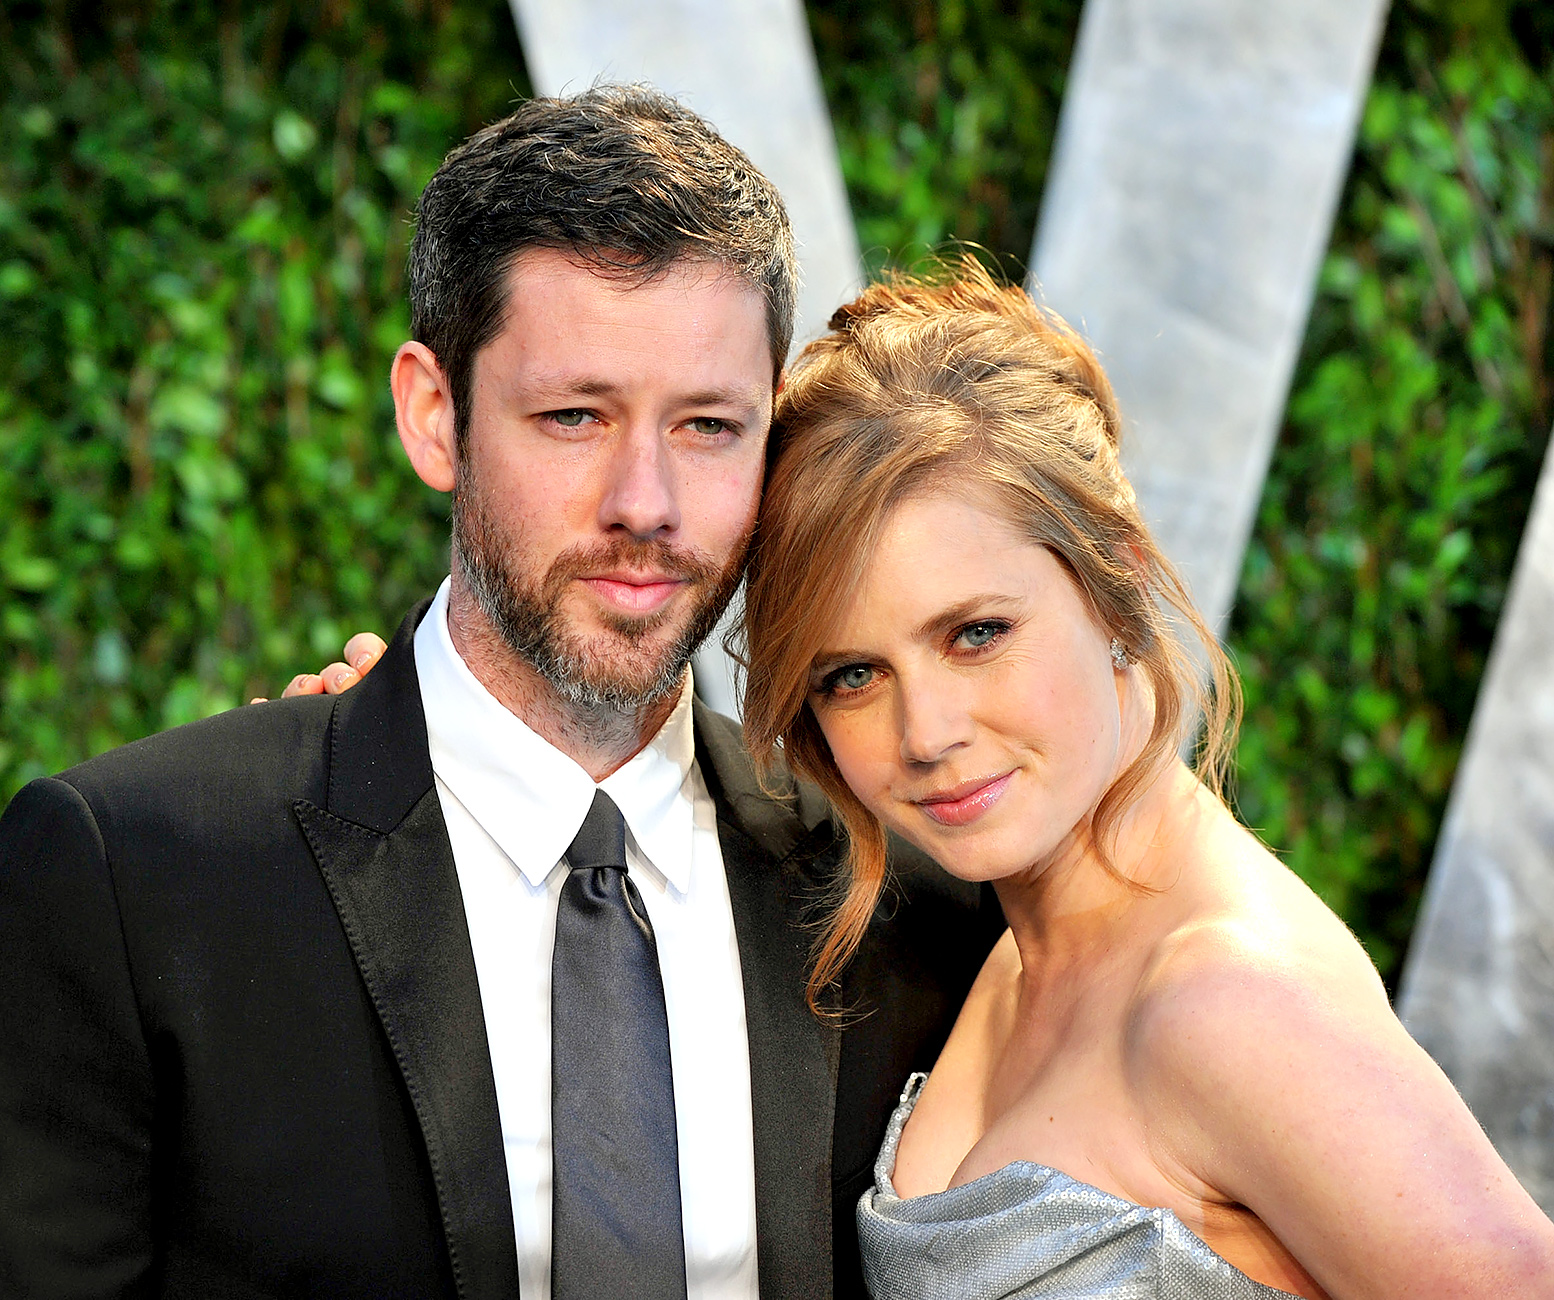 Darren Le Gallo and Amy Adams get married in an intimate wedding on May 2, 2015